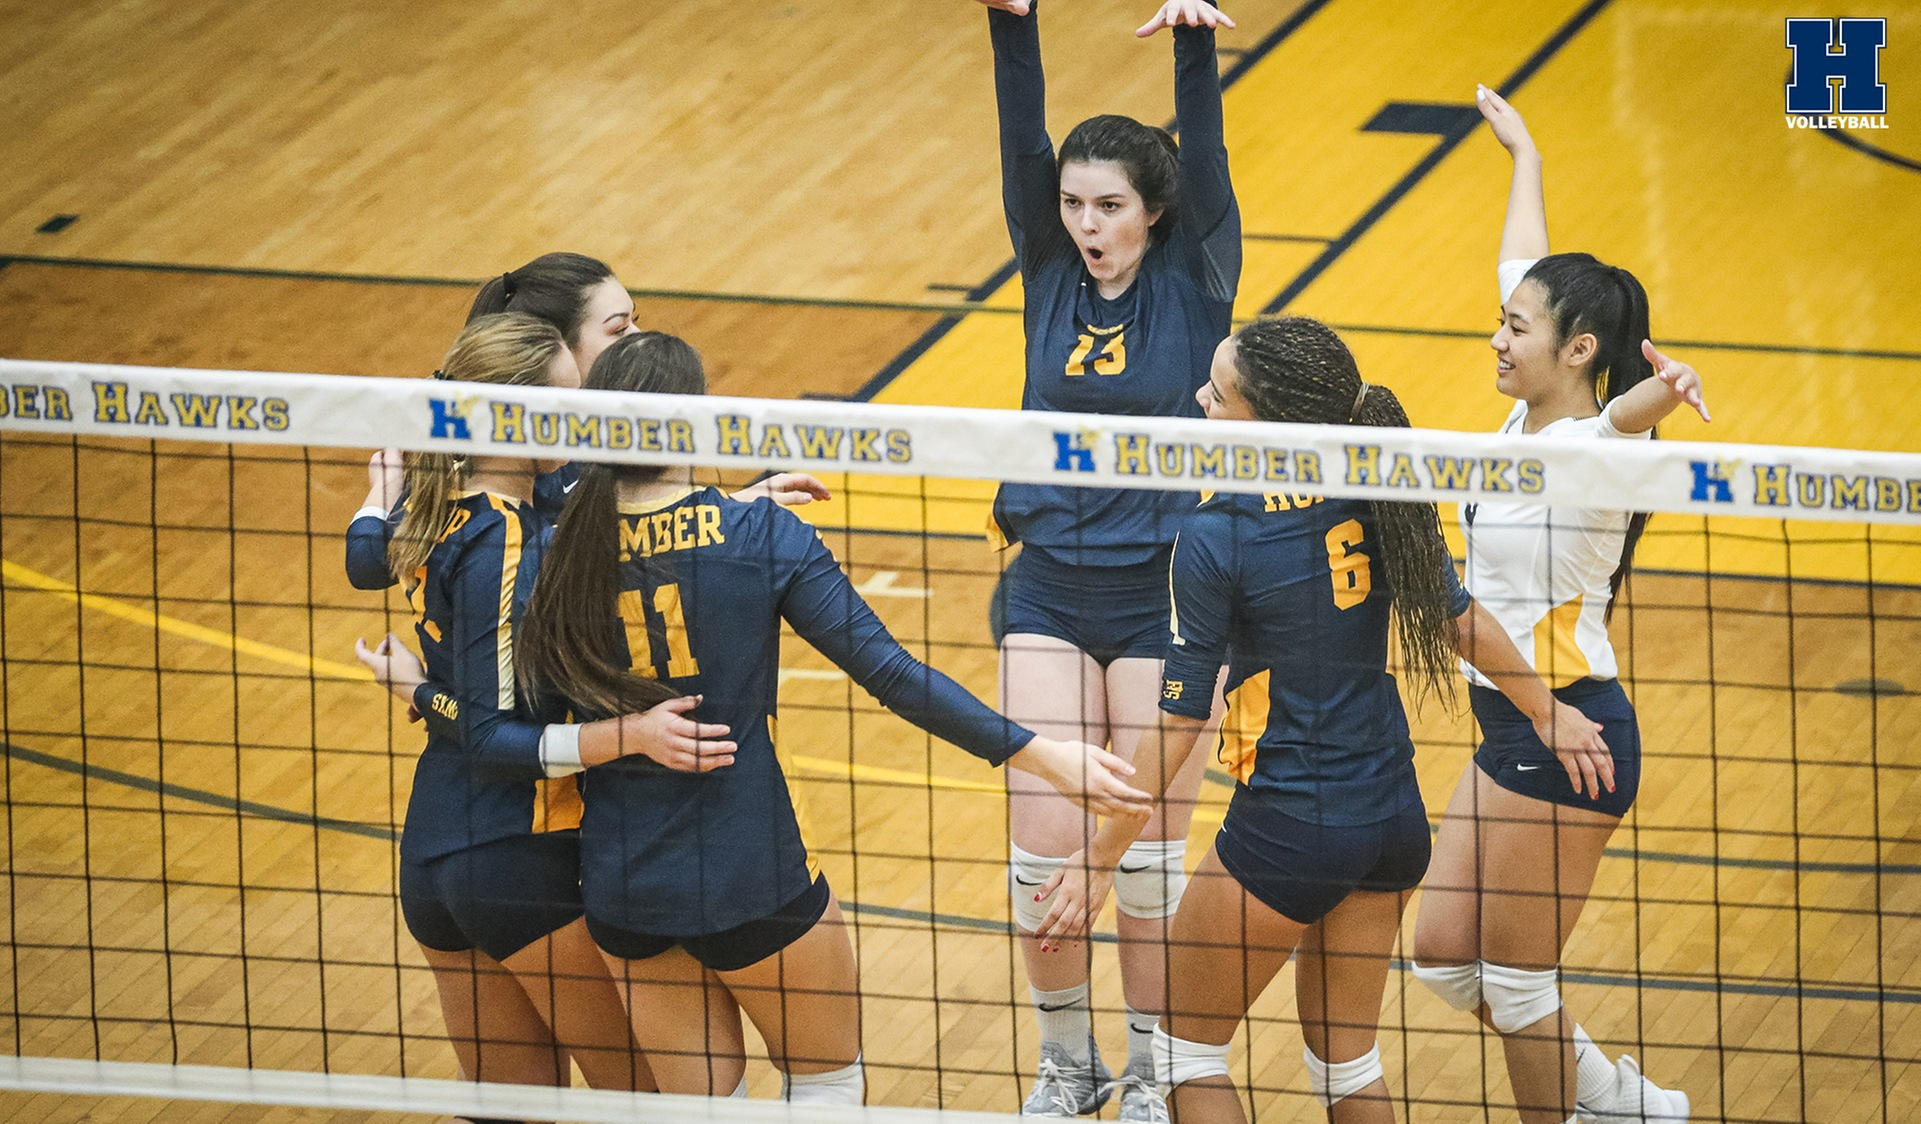 Another Sweep for No. 15 Women's Volleyball Over Boréal